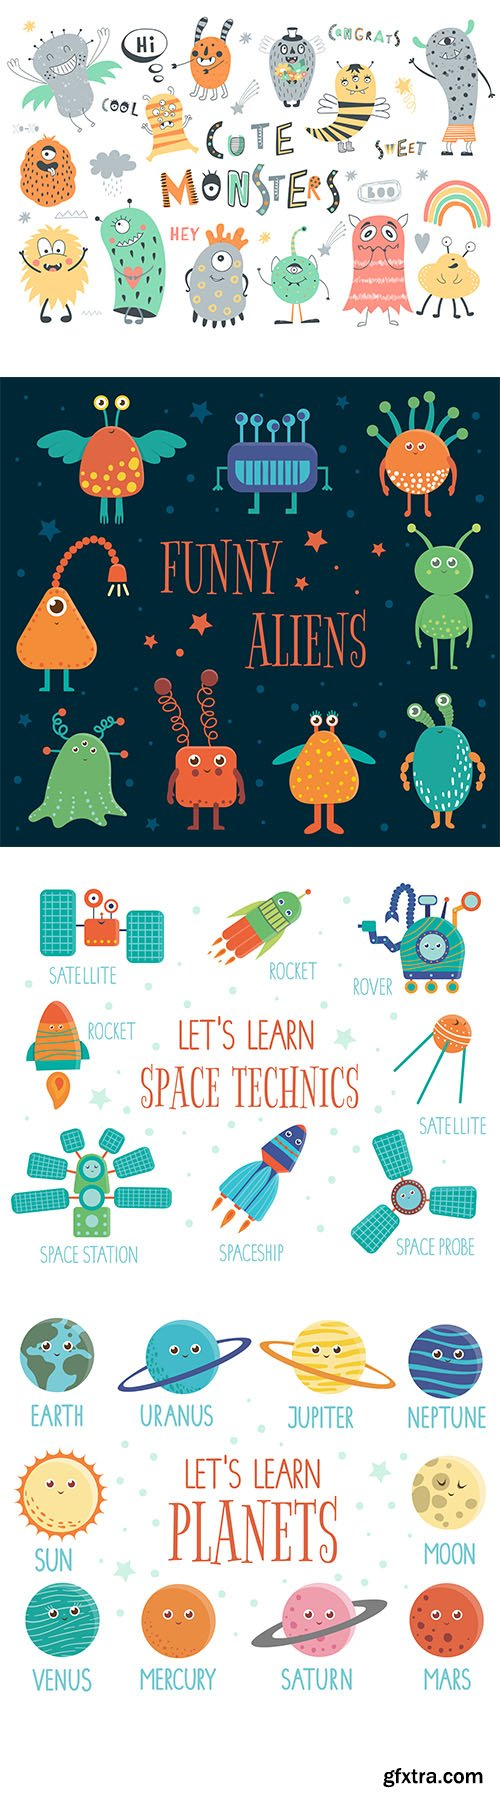 Funny Aliens Cute Monsters, Space Technics and Planets